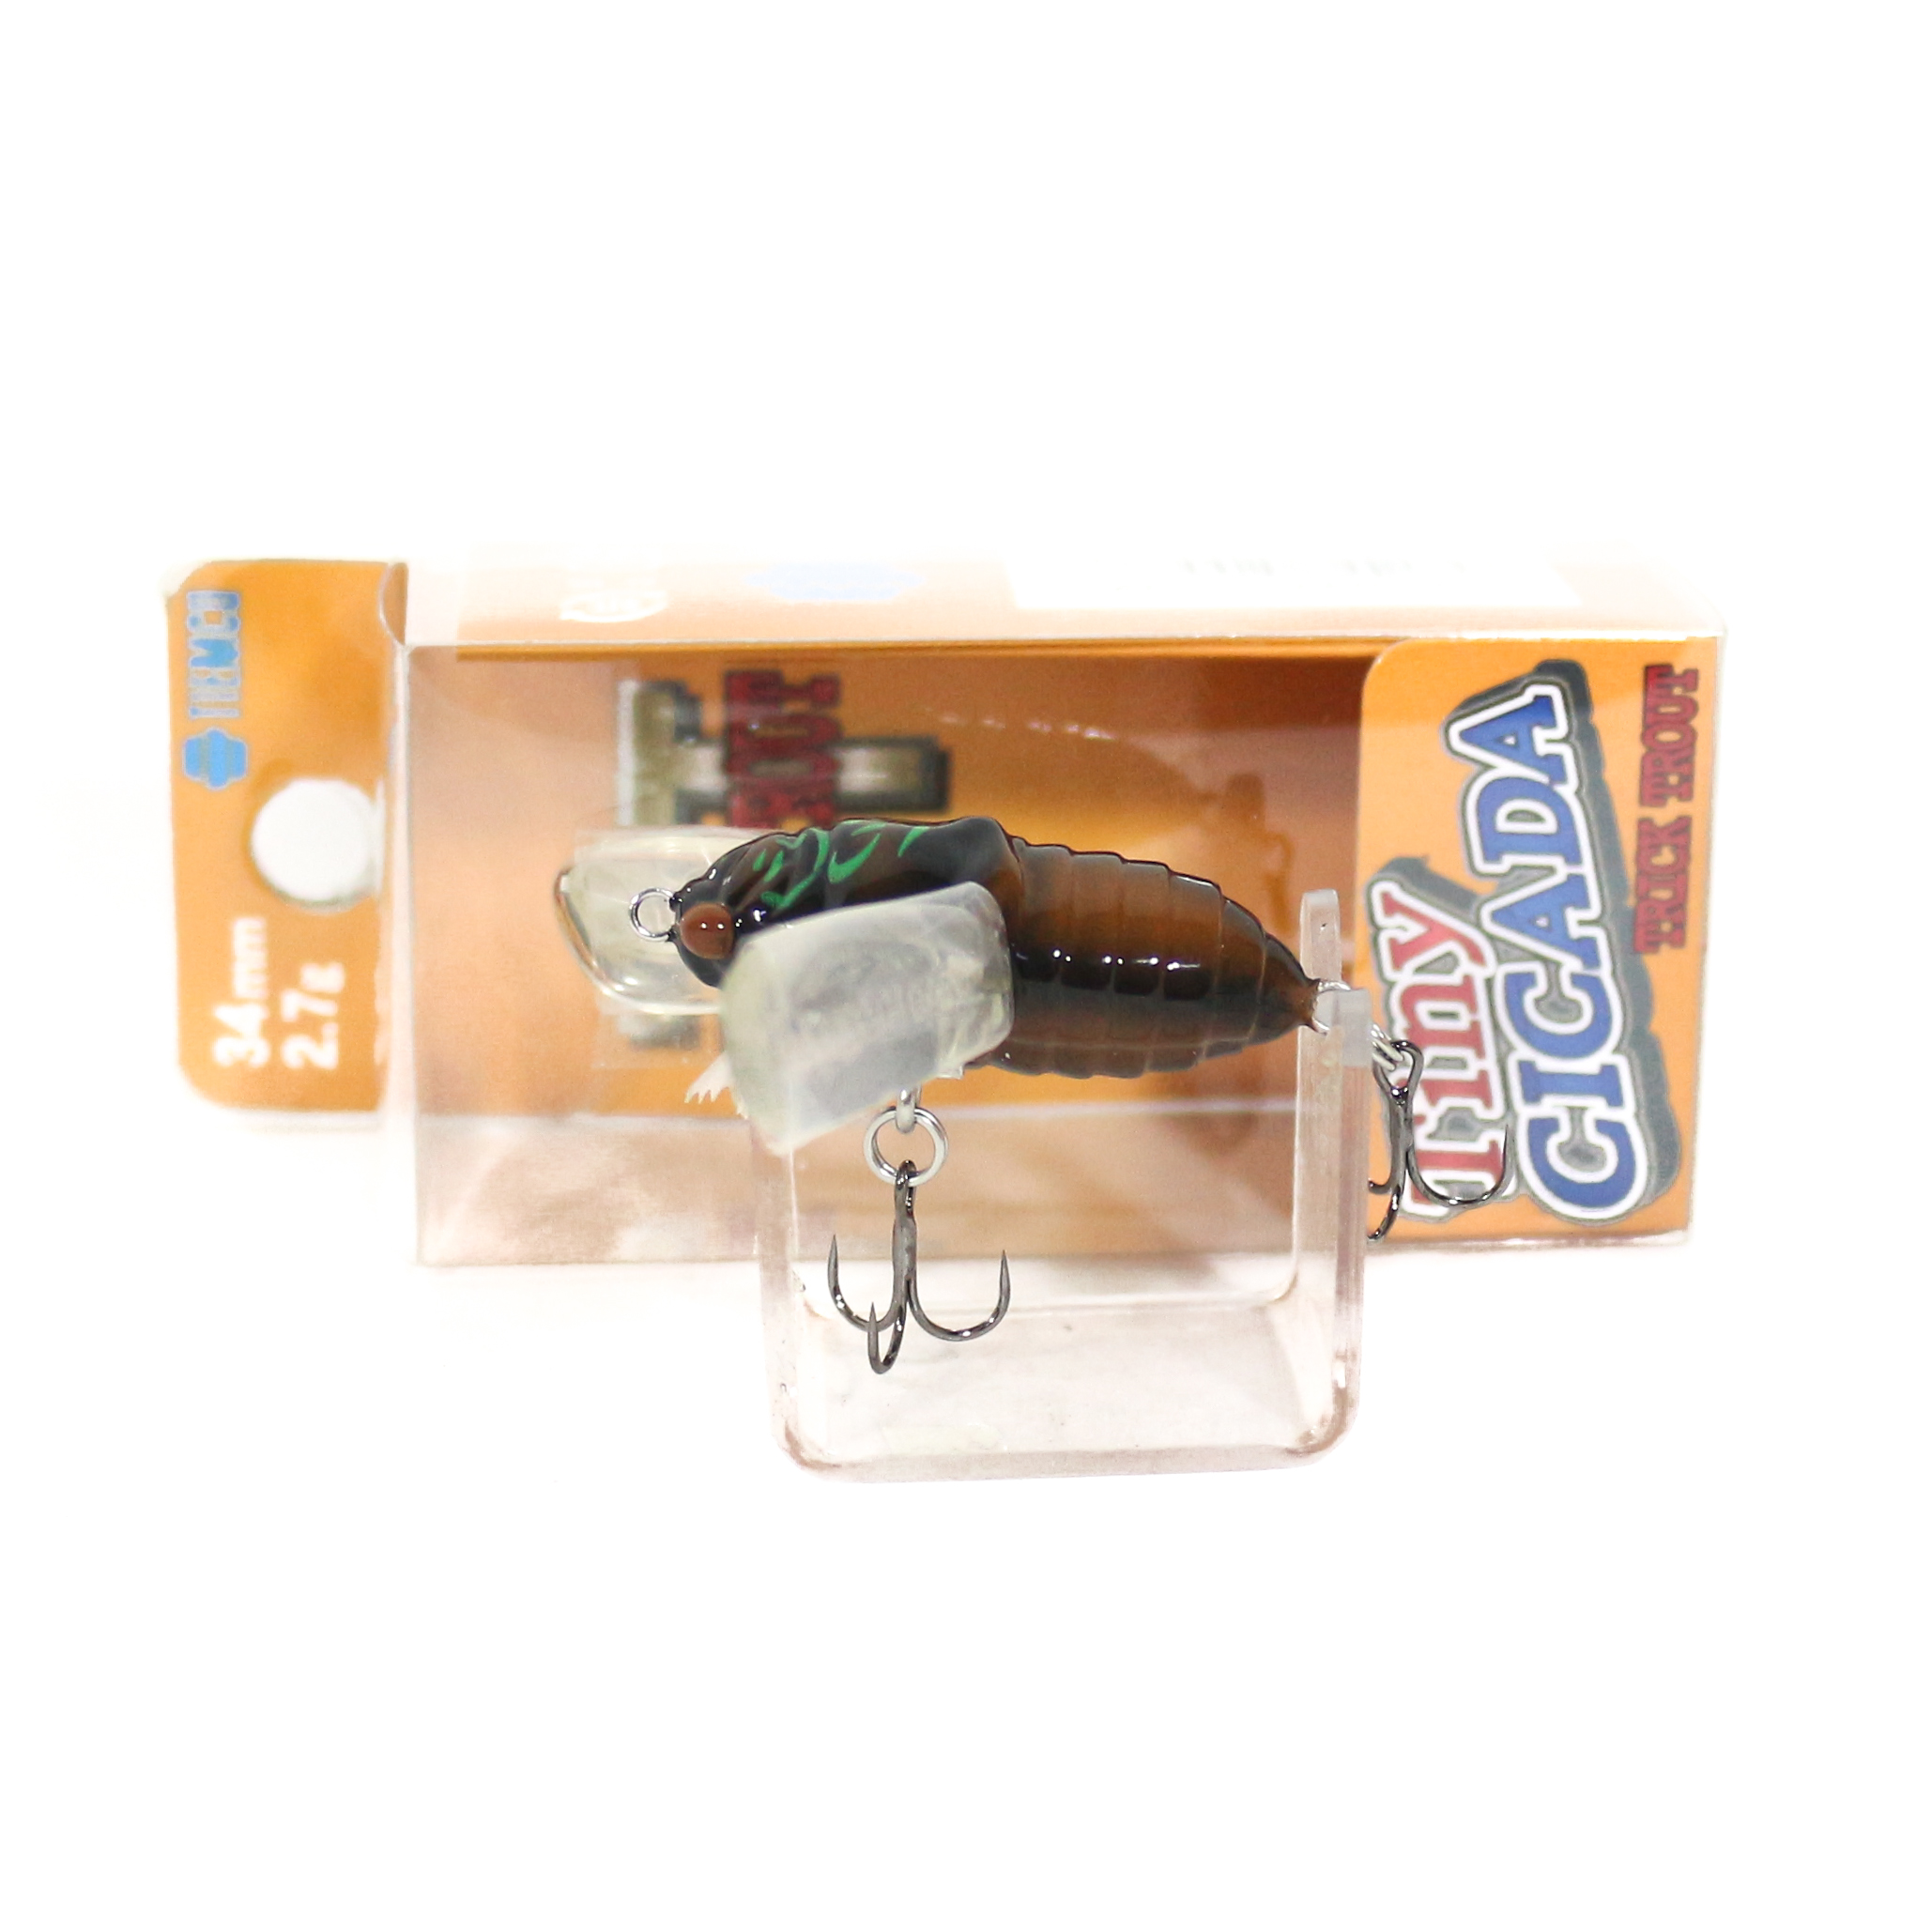 Tiemco Cicada Tiny Trick Trout Floating Lure TTTC-061 (0859)